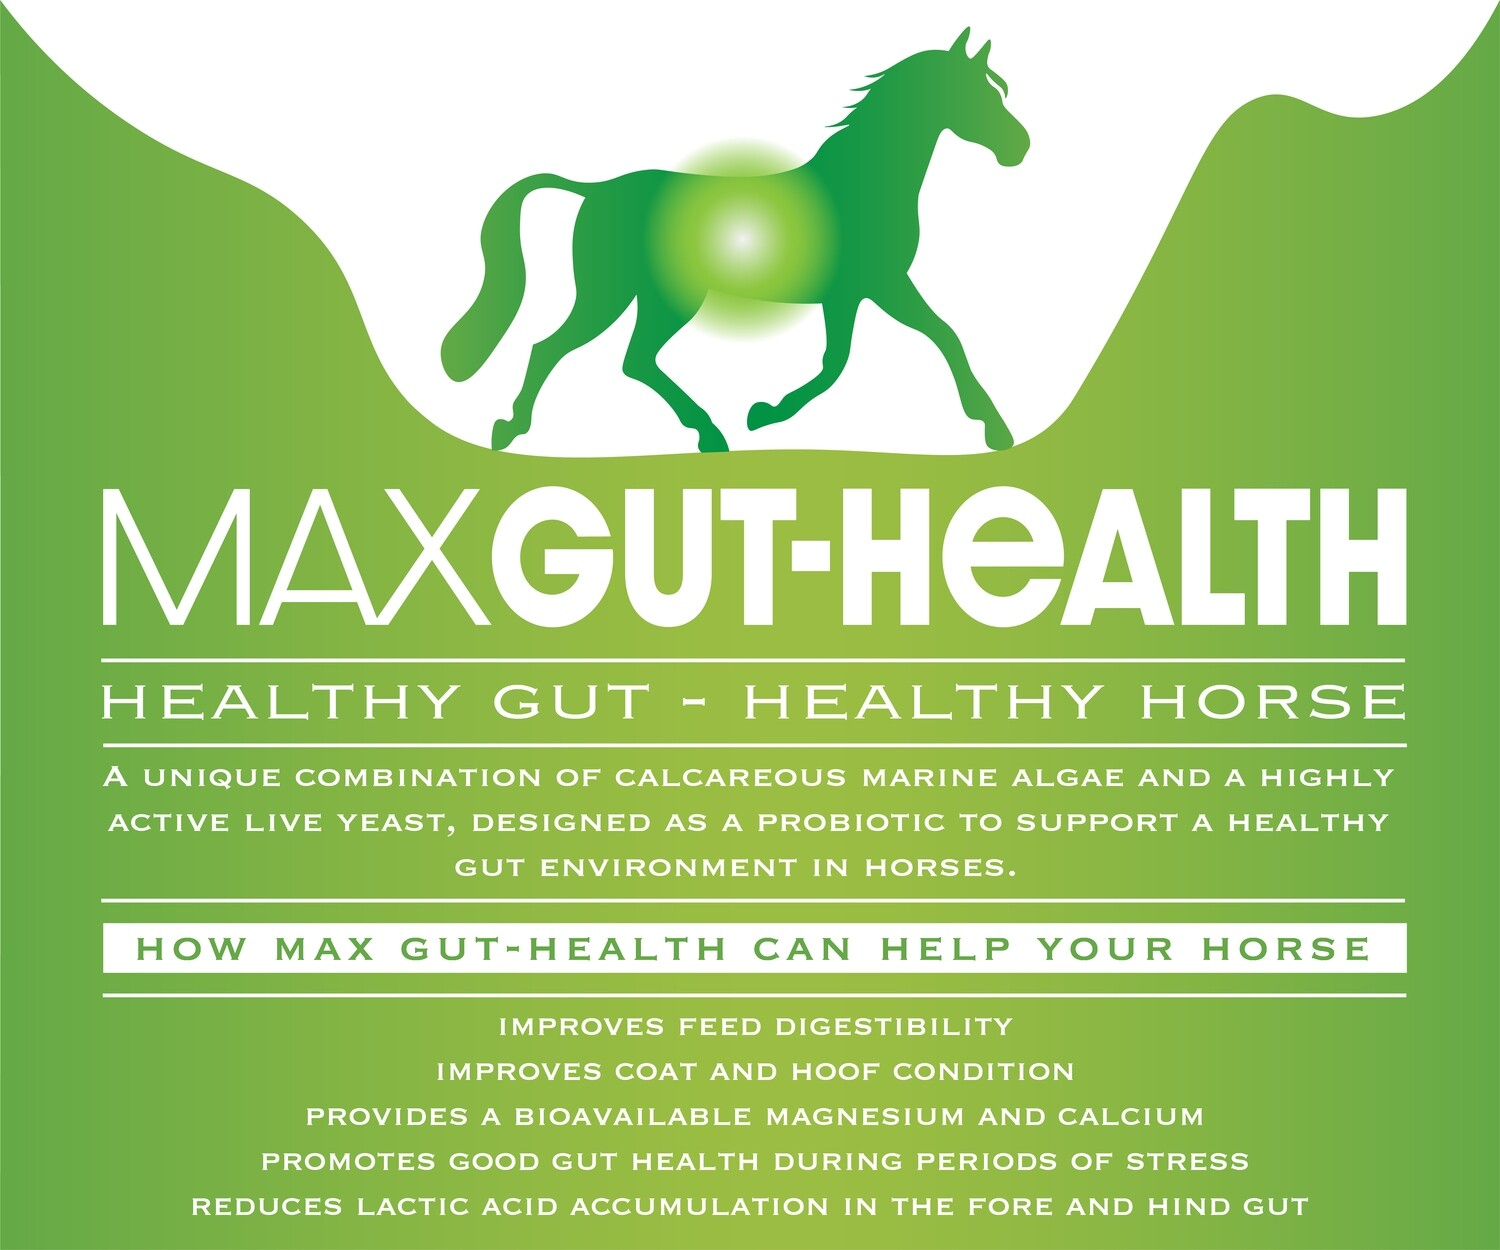 Max-Gut Health 4Kg (80 days per horse) £99 including Postage and packing (shipped by DHL - a tracking code will be emailed to you)